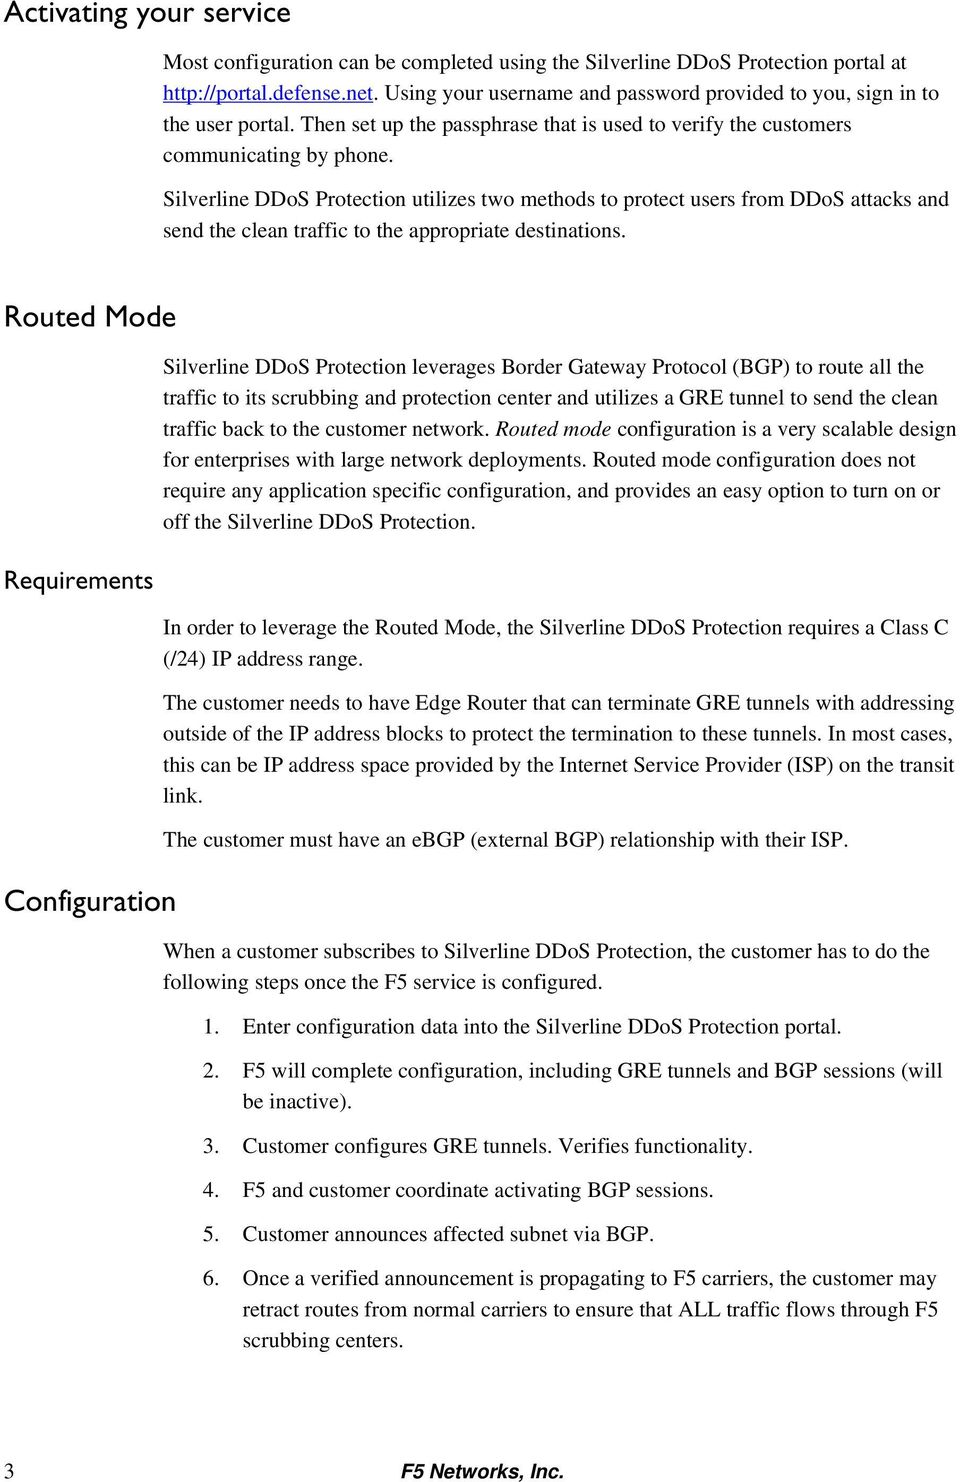 F5 Silverline DDoS Protection Onboarding: Technical Note - PDF